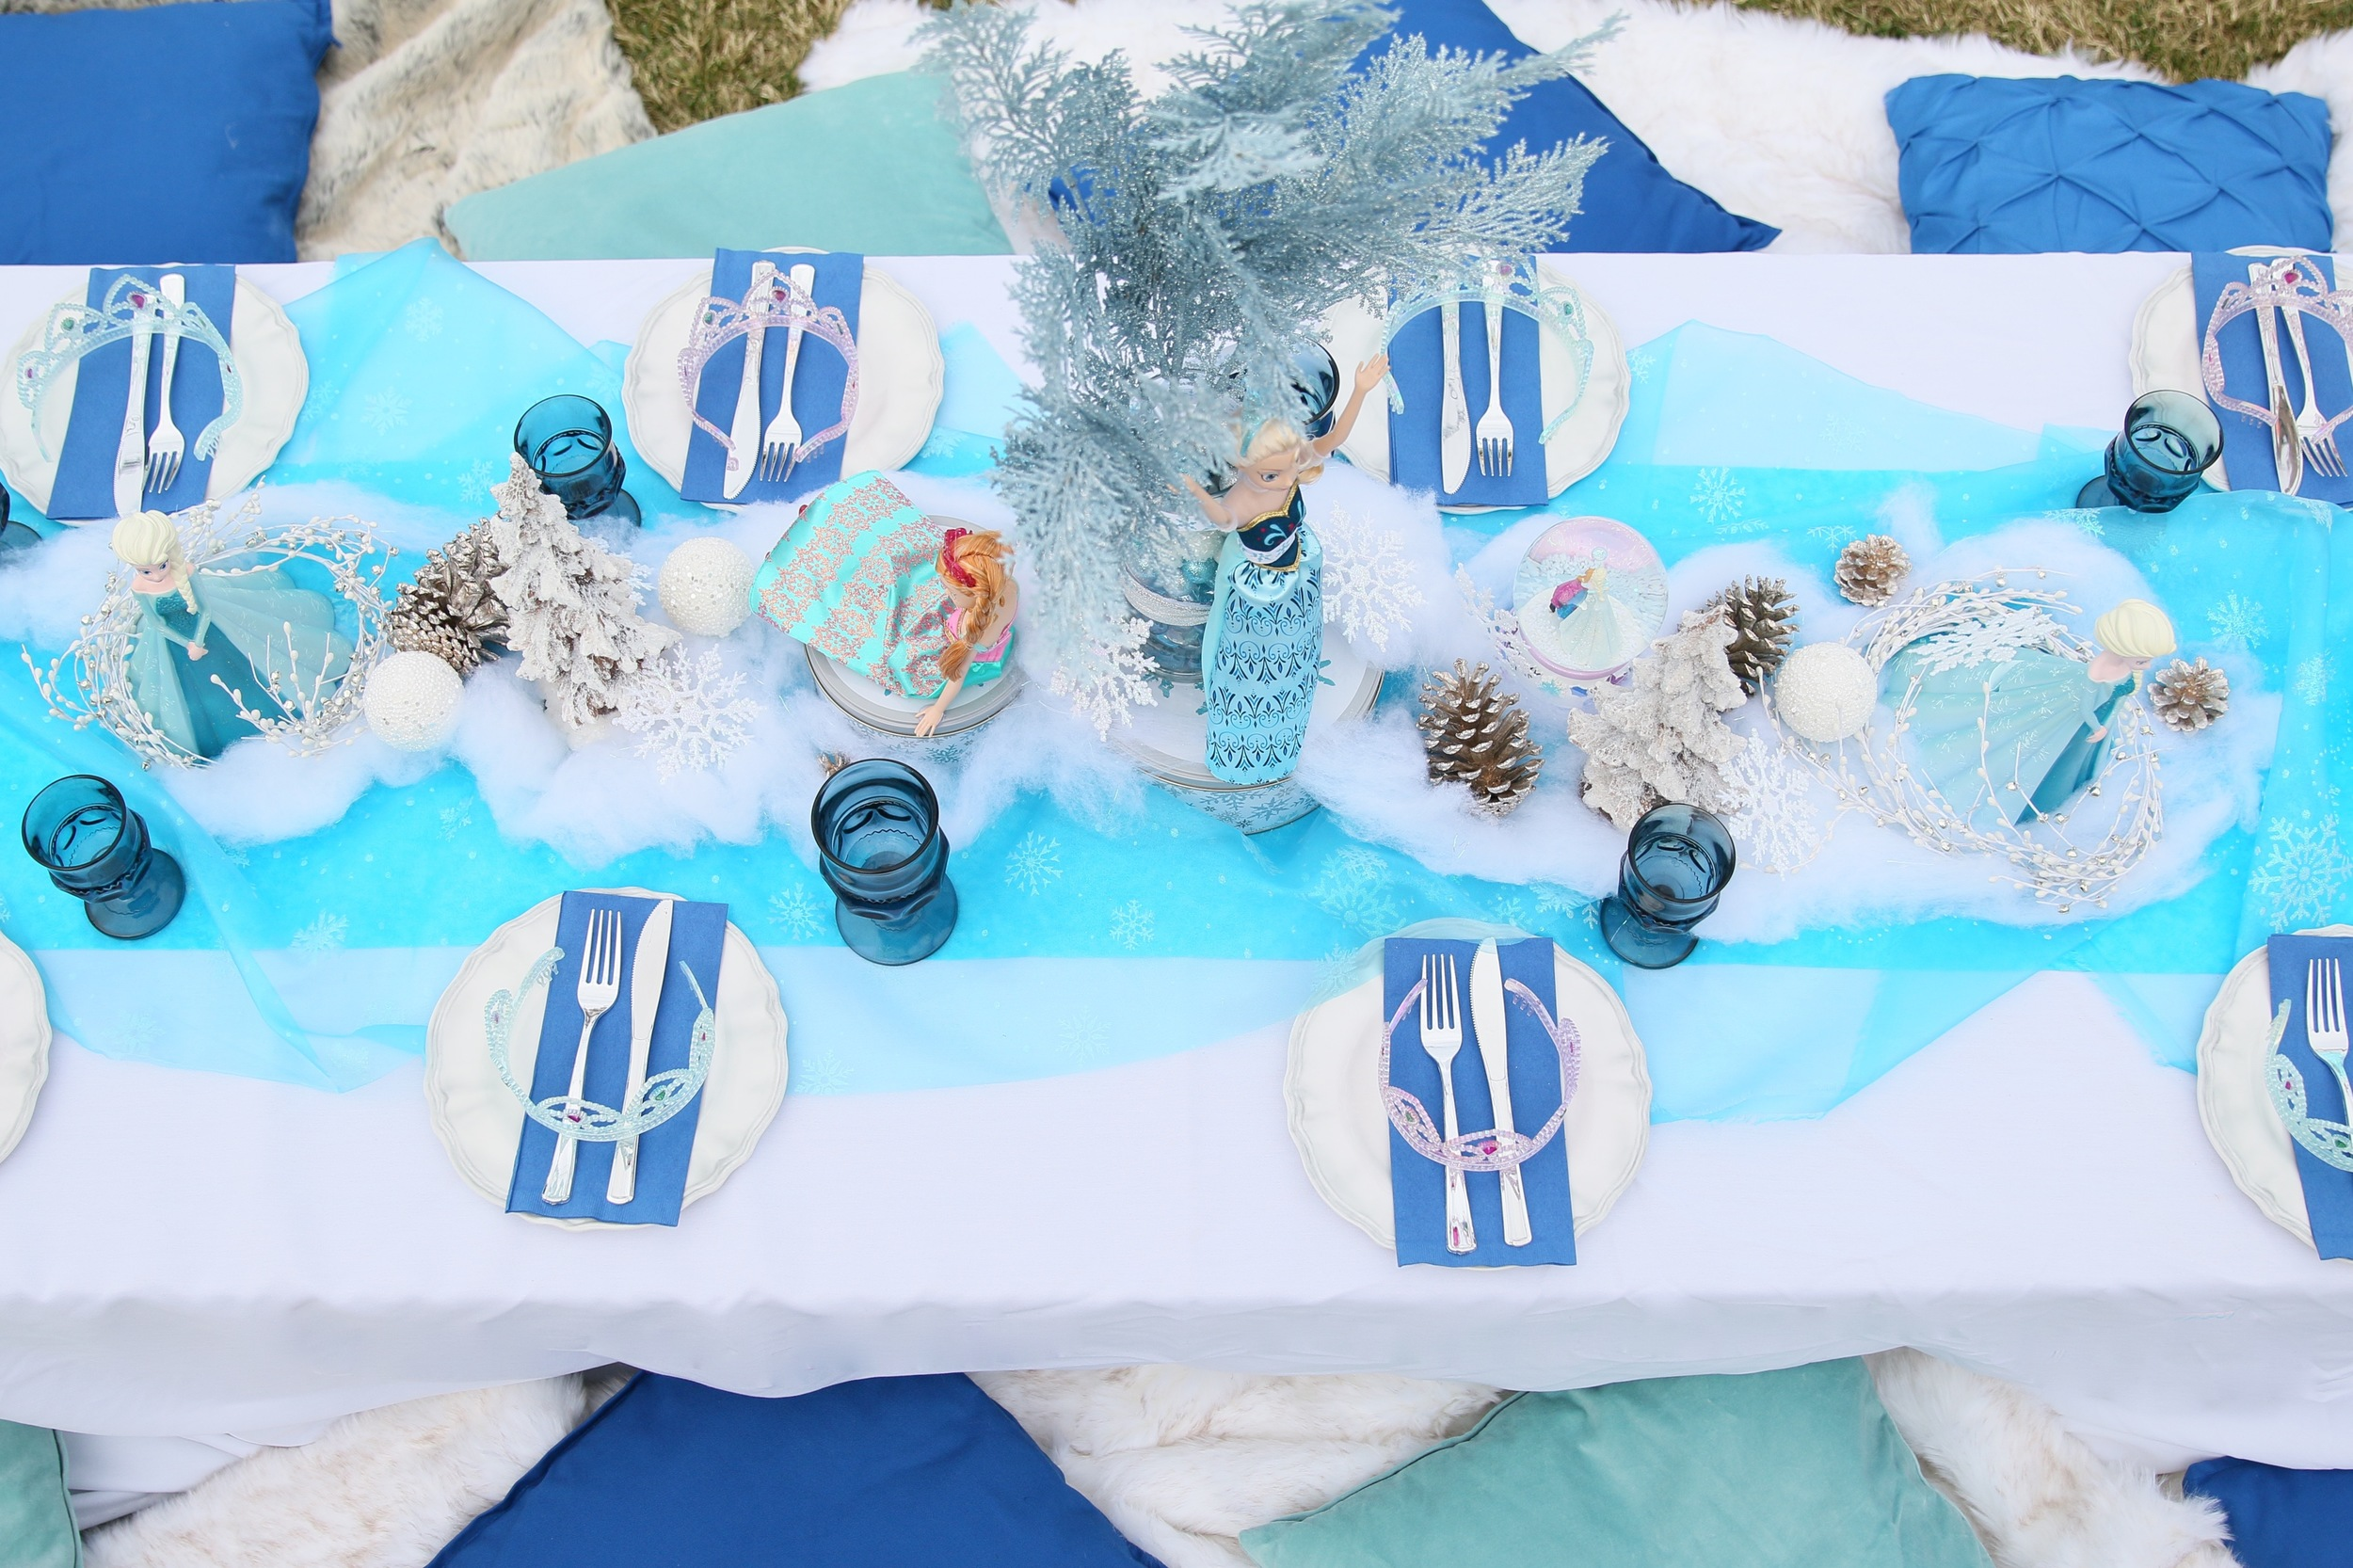 I can't let this go! A FROZEN tablescape for rent! @inJOYtheParty